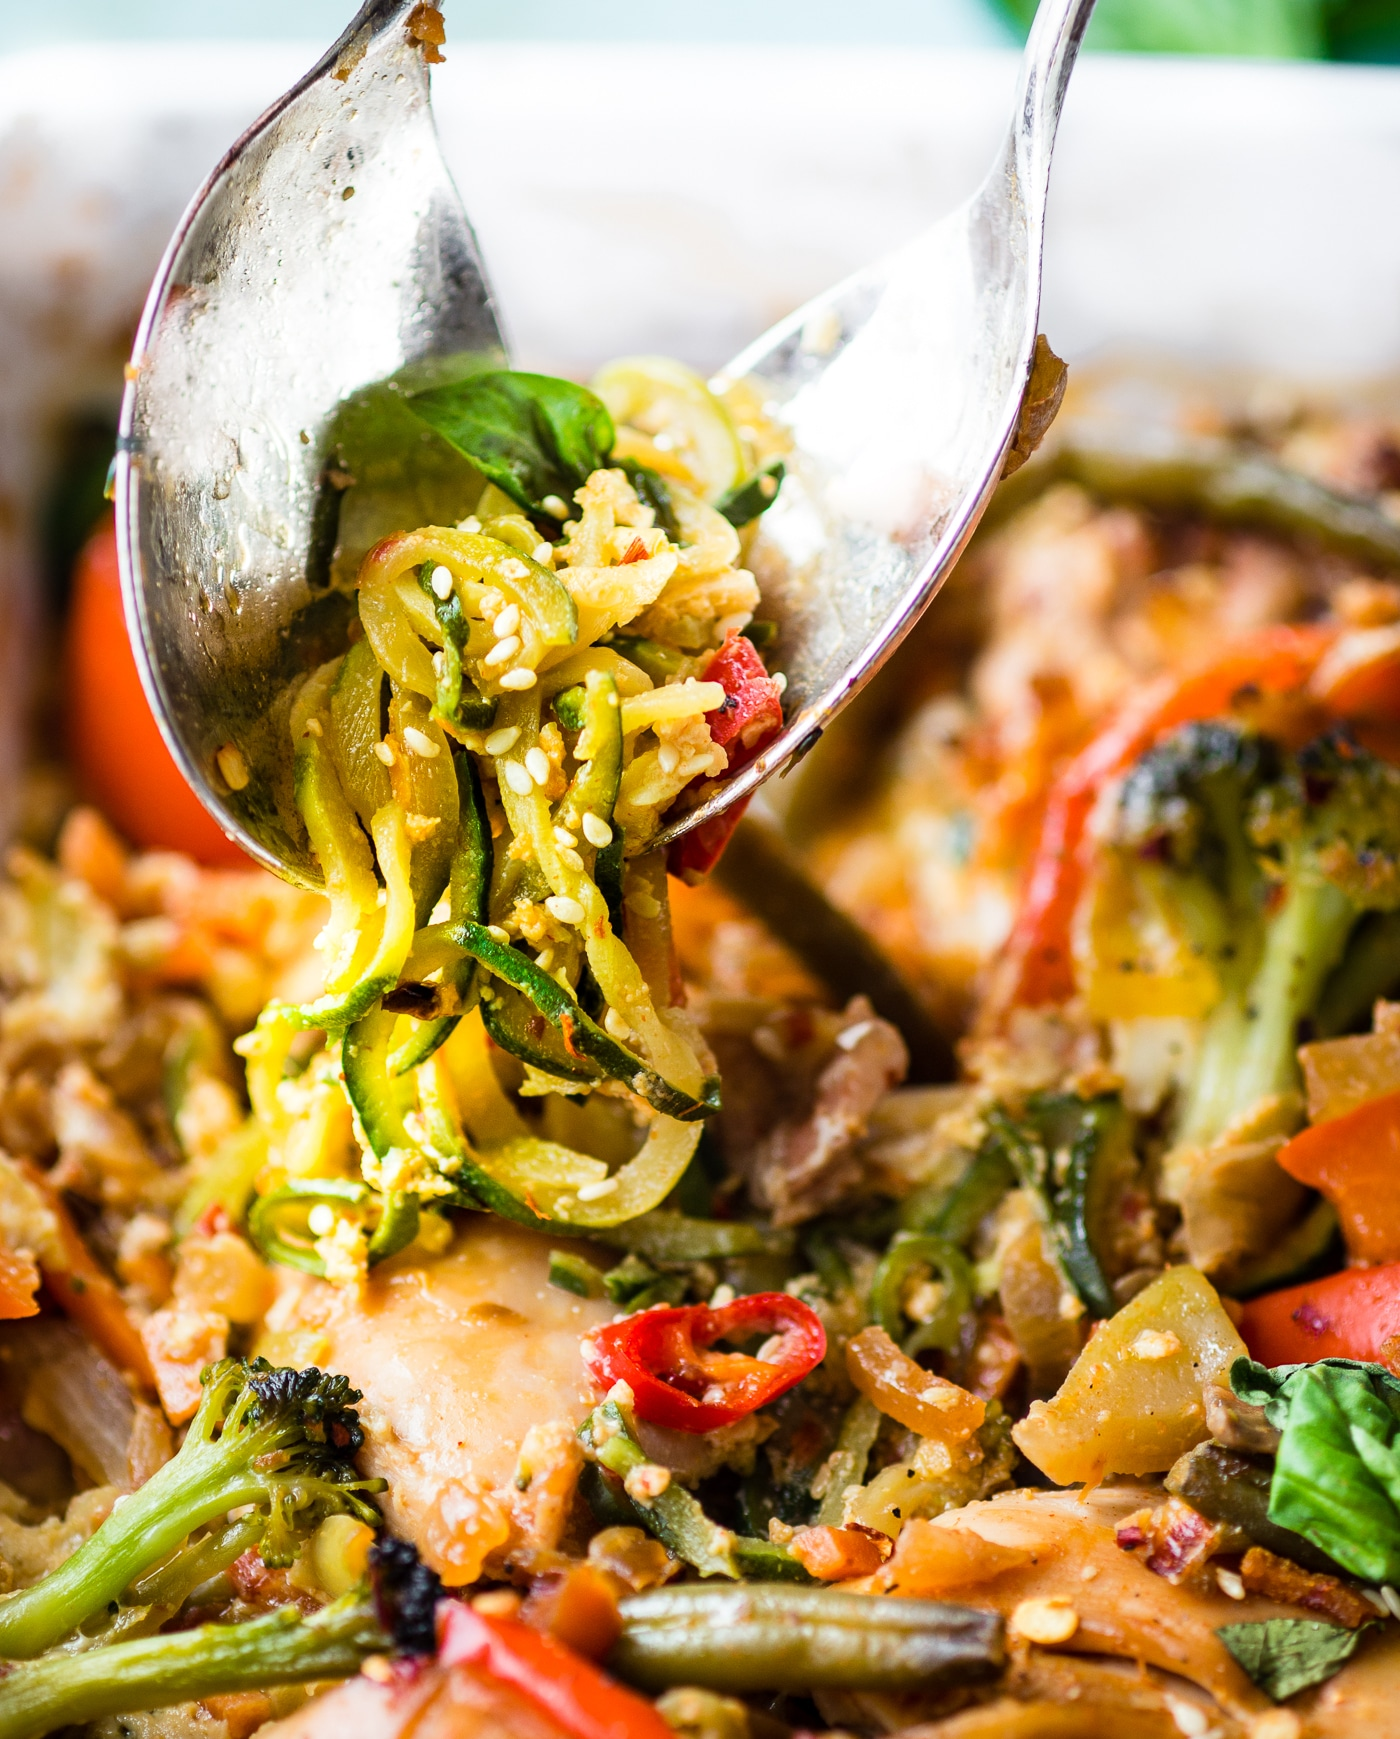 Drunken Chicken Zoodle Casserole takes a spin on the original Pad kee mao Asian stir fry and puts it in casserole form. A paleo zucchini noodle casserole with tons of flavor, Thai spices, and simple healthy ingredients! A delicious, light, high protein, low carb recipe. | CotterCrunch.com